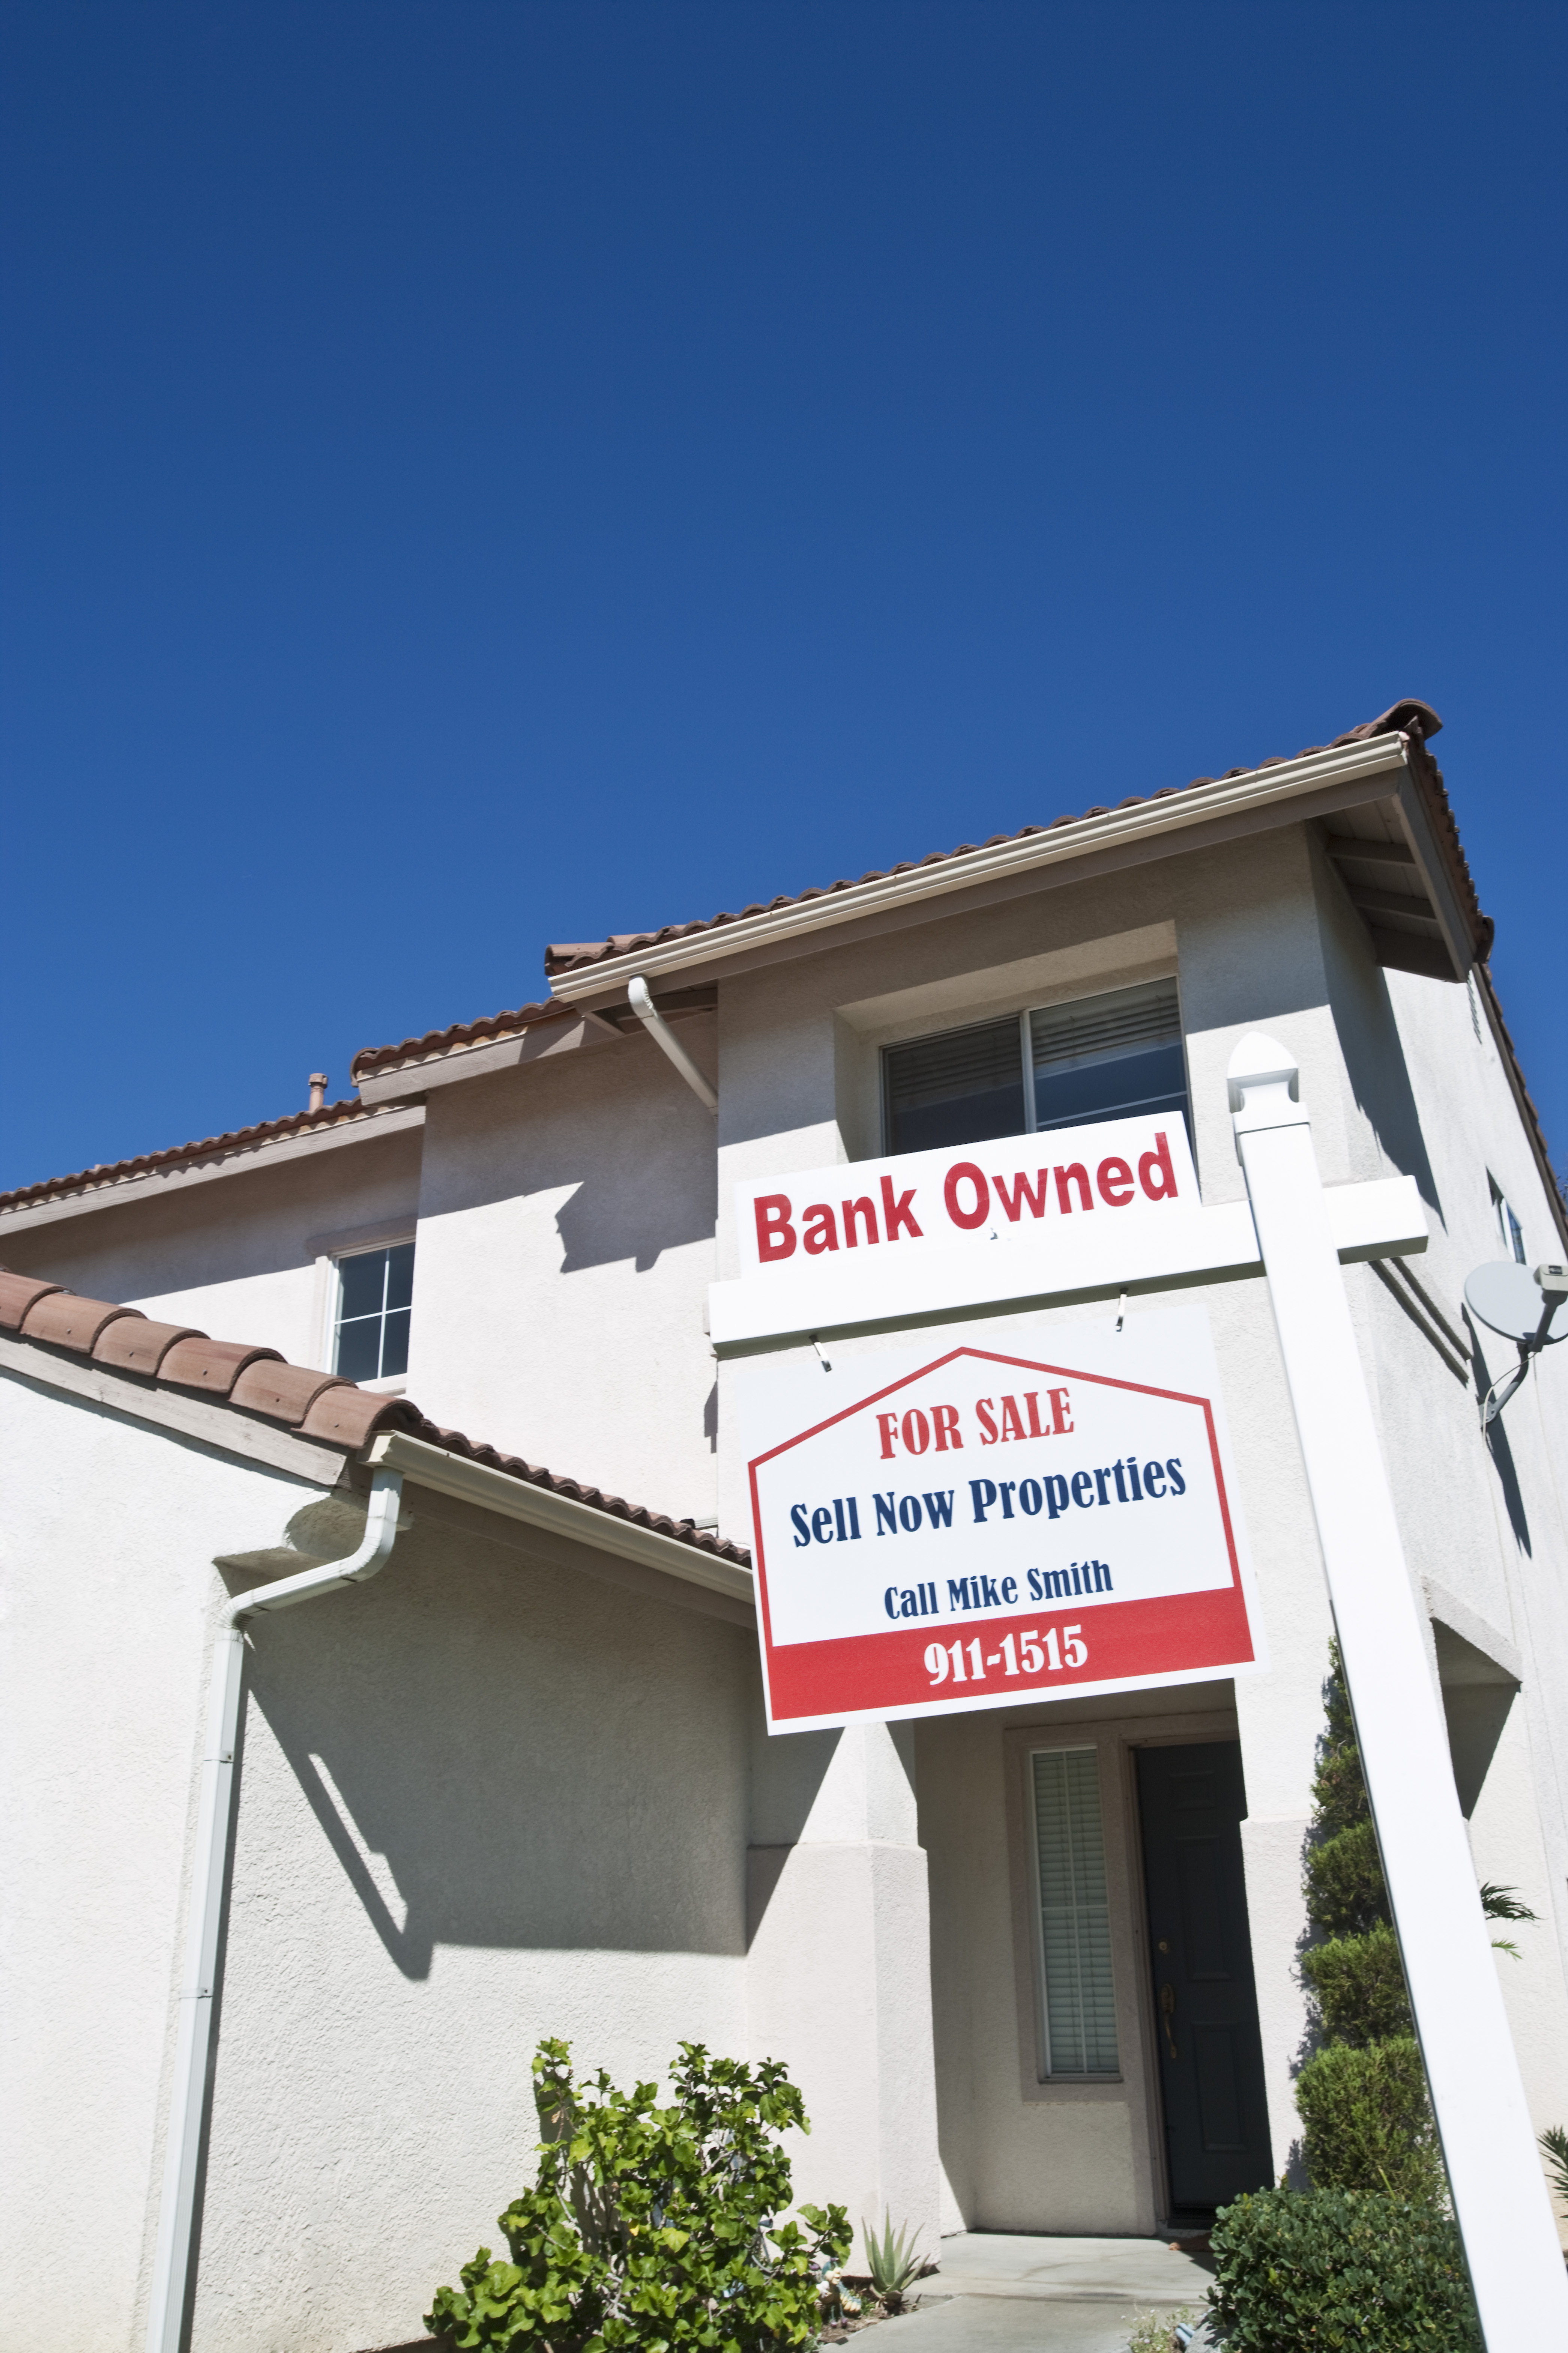 bank owned house for sale picture